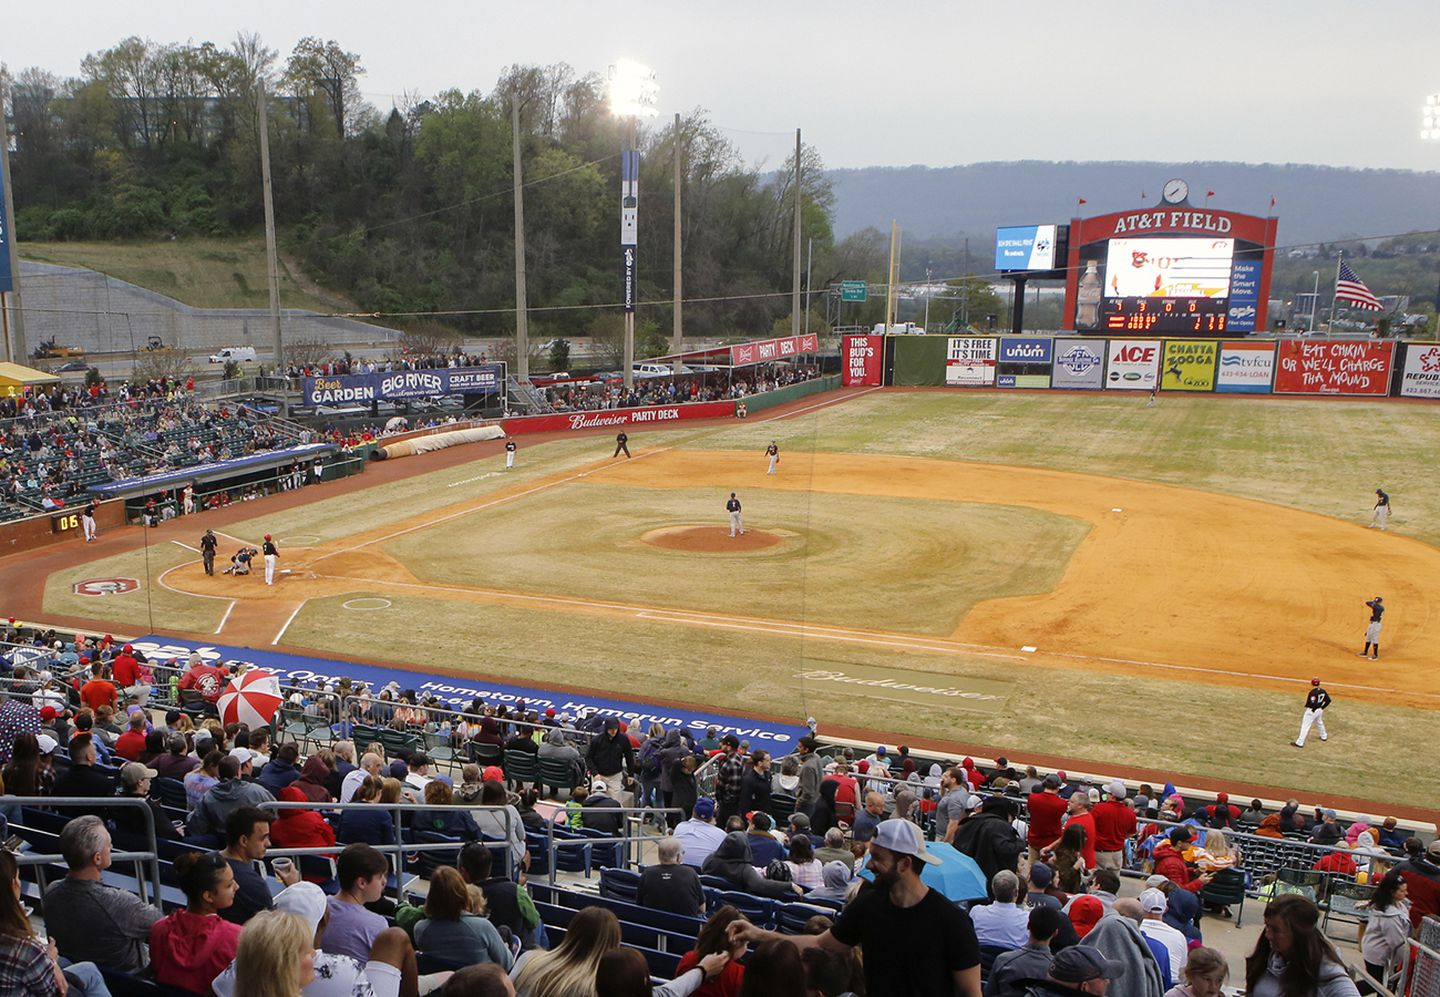 Here are the teams MLB wants to eliminate from its minor league system - The Boston Globe